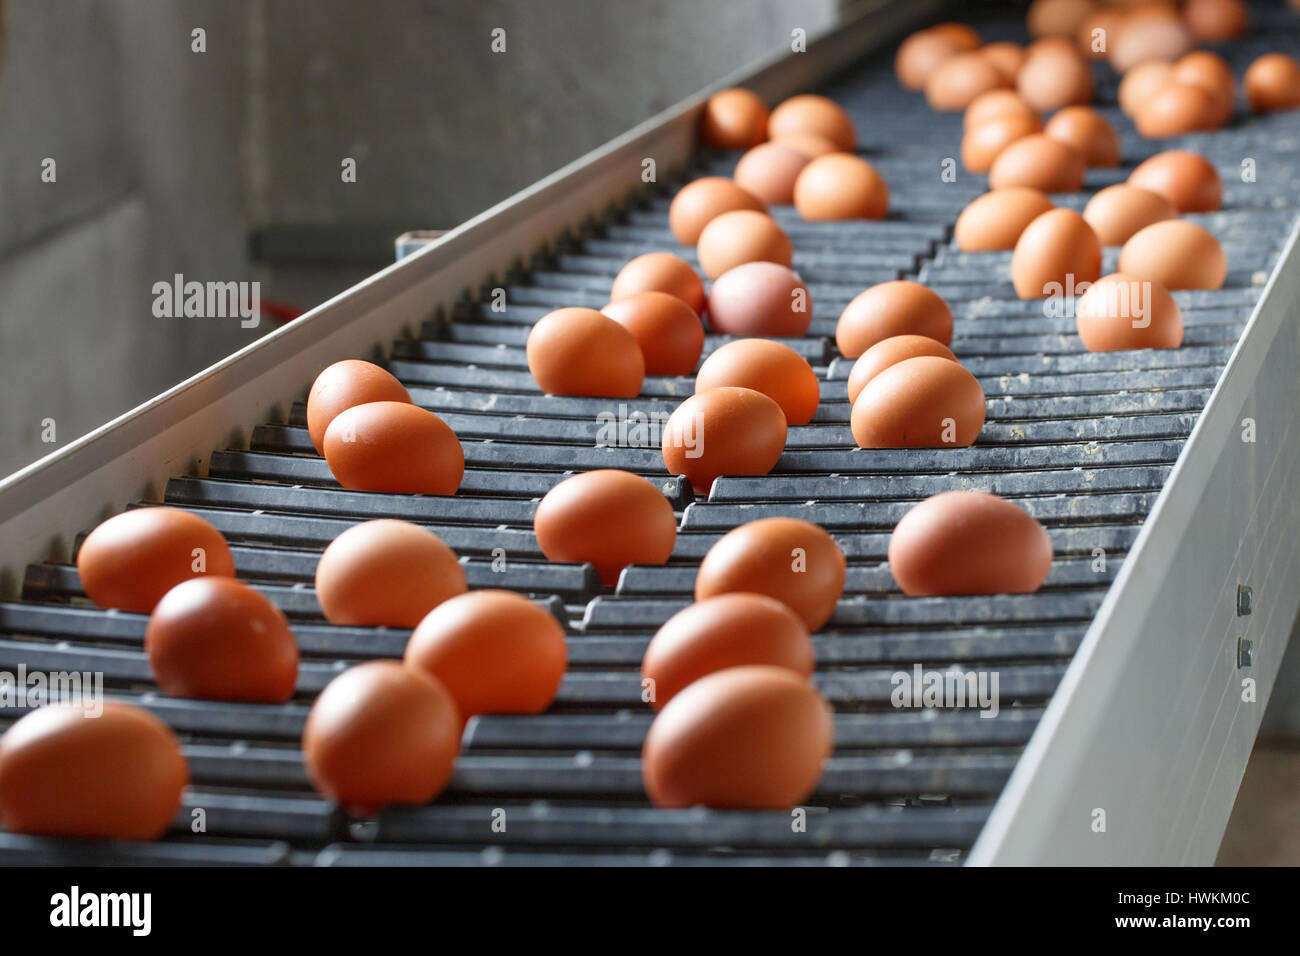 Fresh and raw chicken eggs on a conveyor belt, being moved to the packing house. Consumerism, egg production, automated - Stock Image